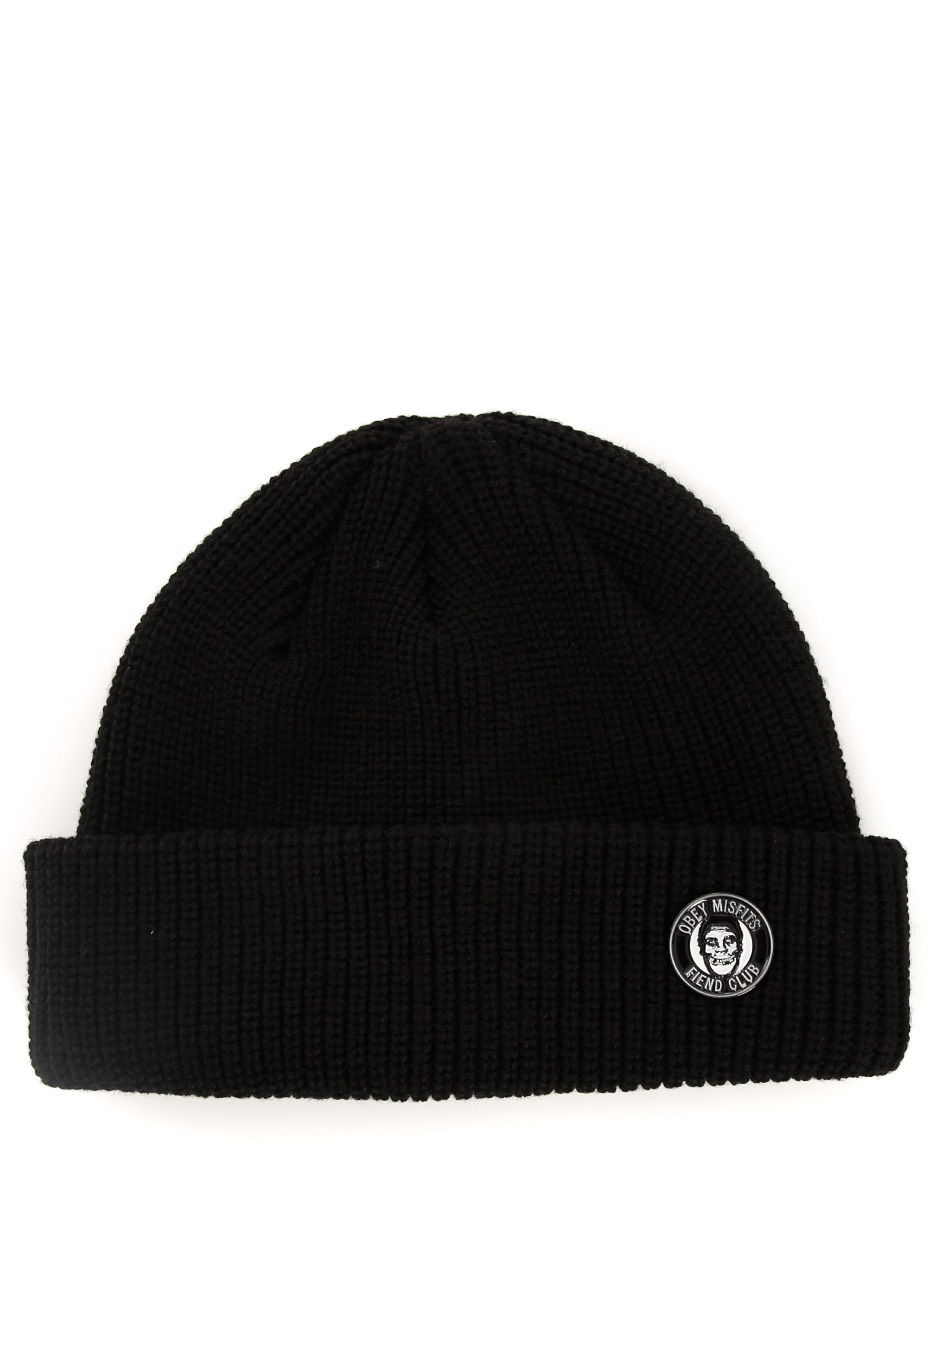 Obey X Misfits - Misfits Legacy Black - Beanie - Official Merchandise Shop  - Impericon.com UK 19c0531c0b6